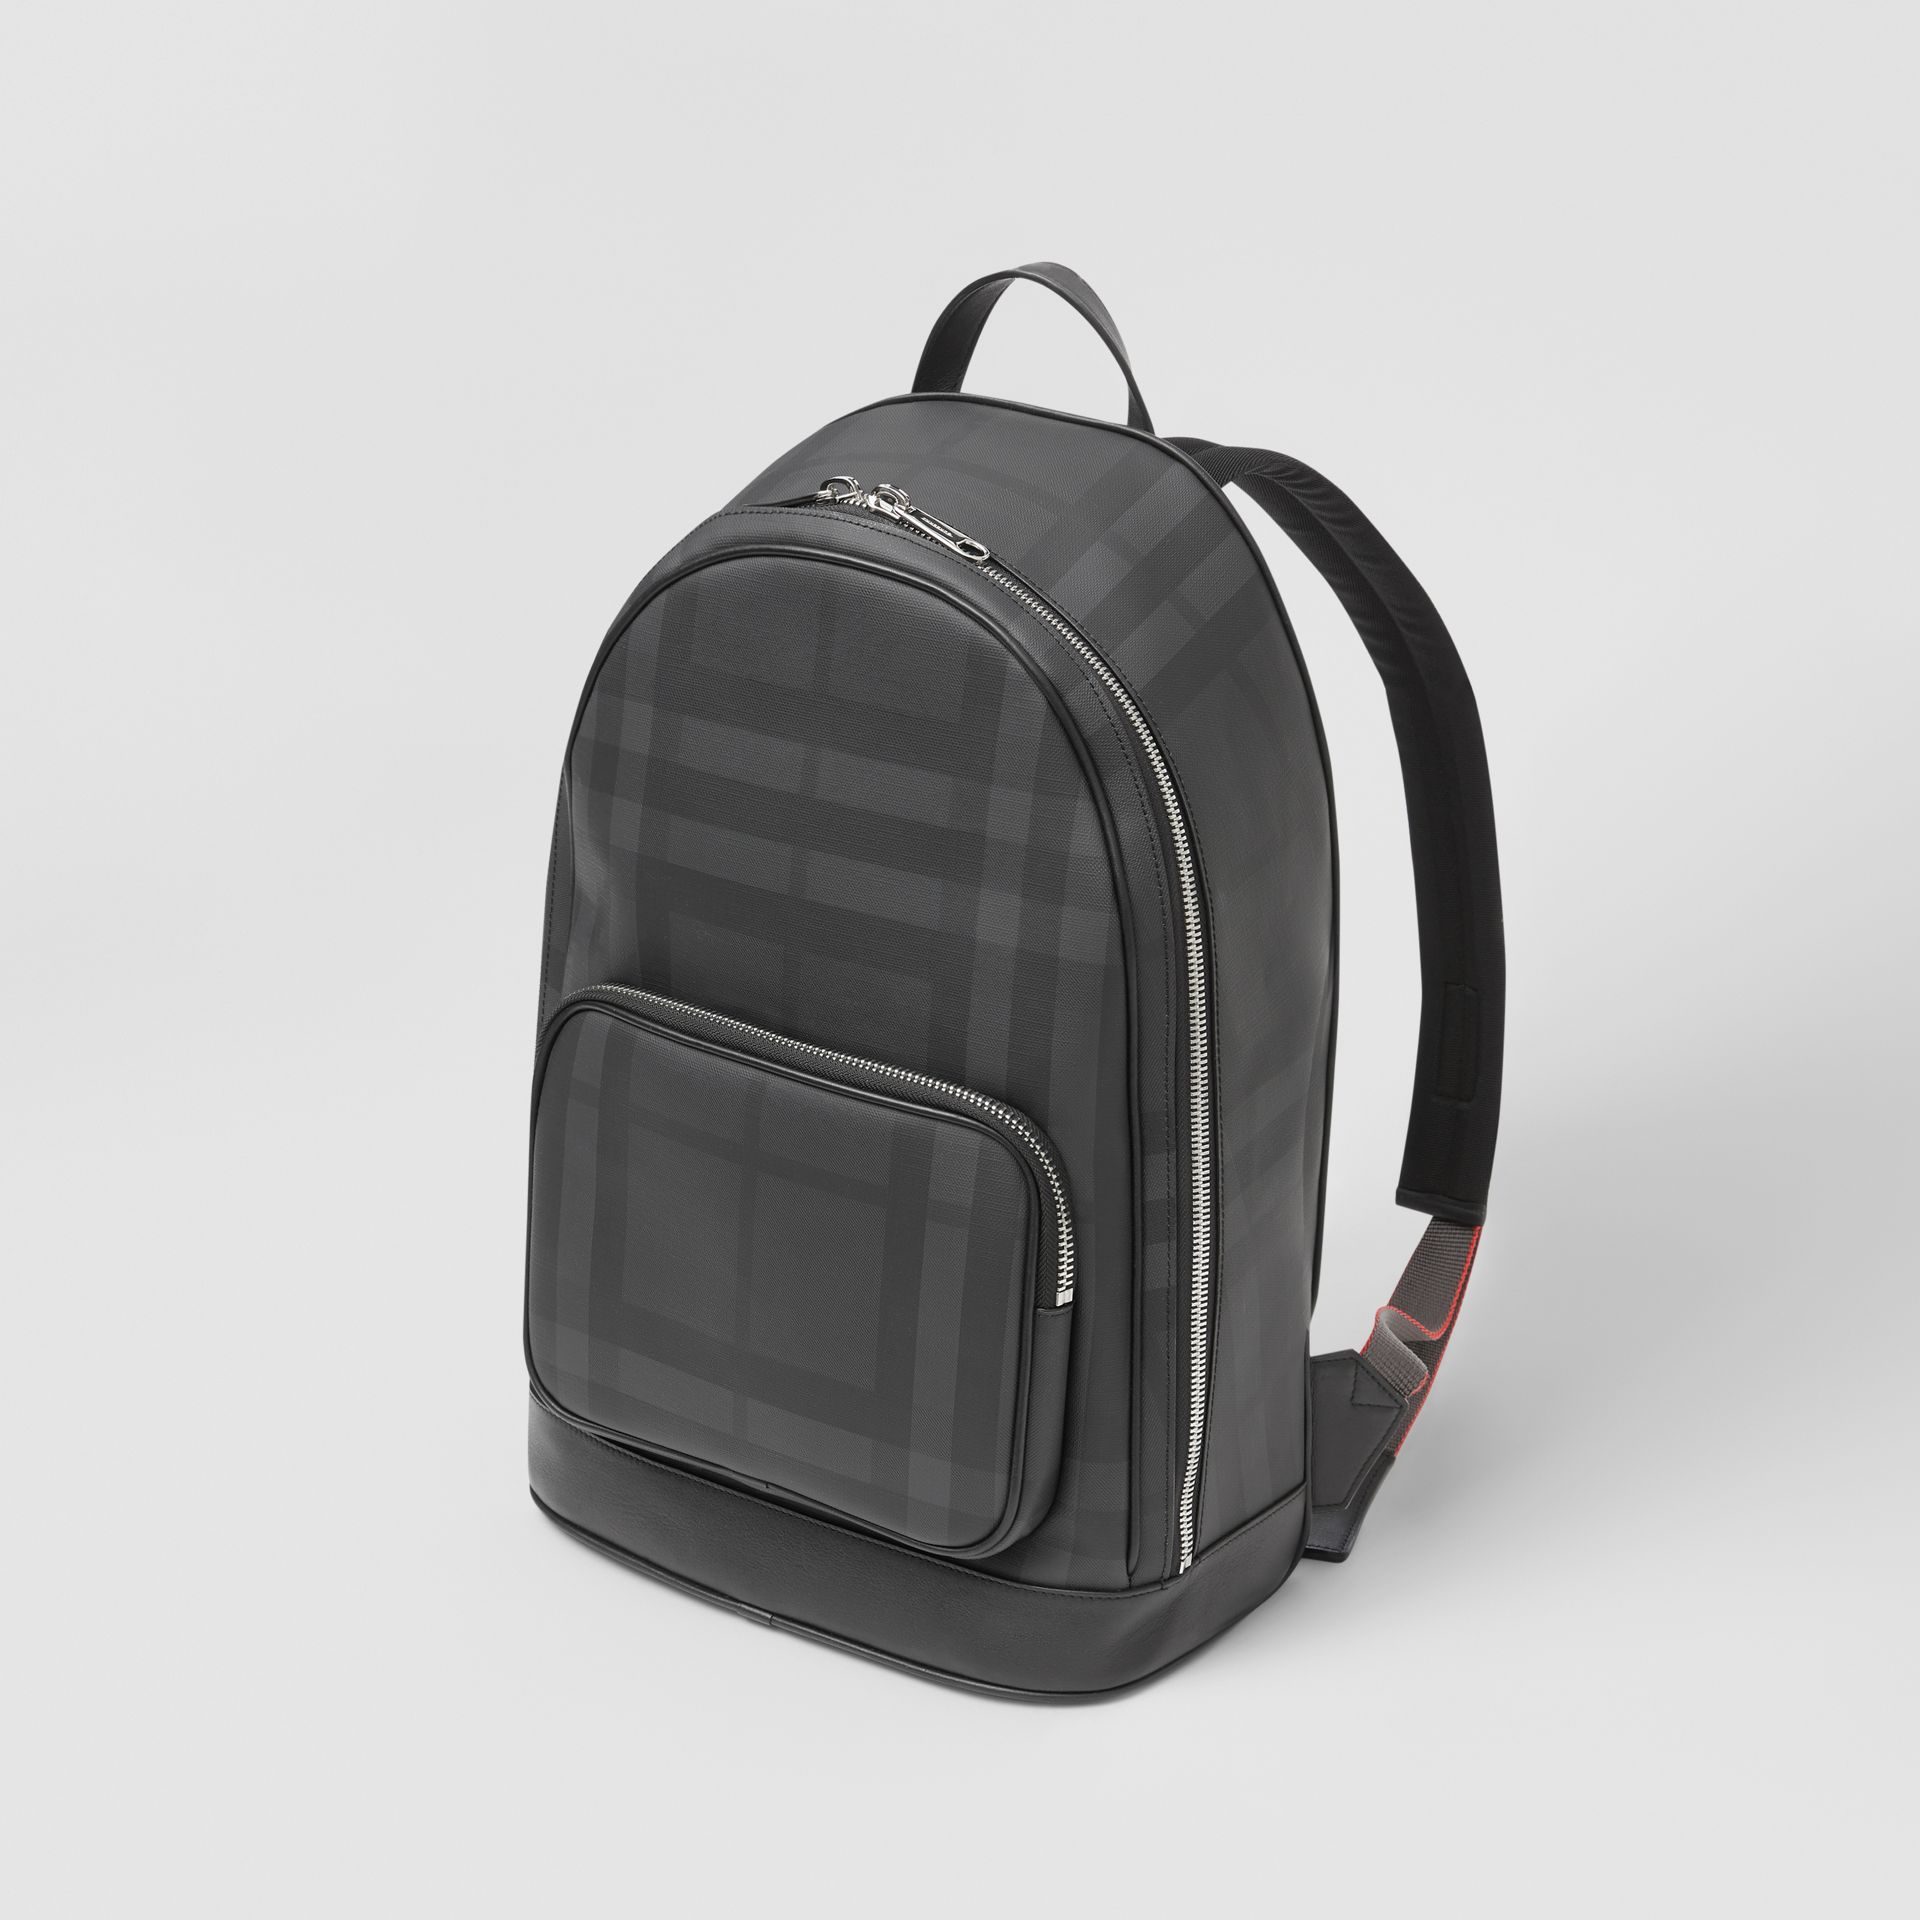 London Check and Leather Backpack in Dark Charcoal - Men | Burberry United States - gallery image 3